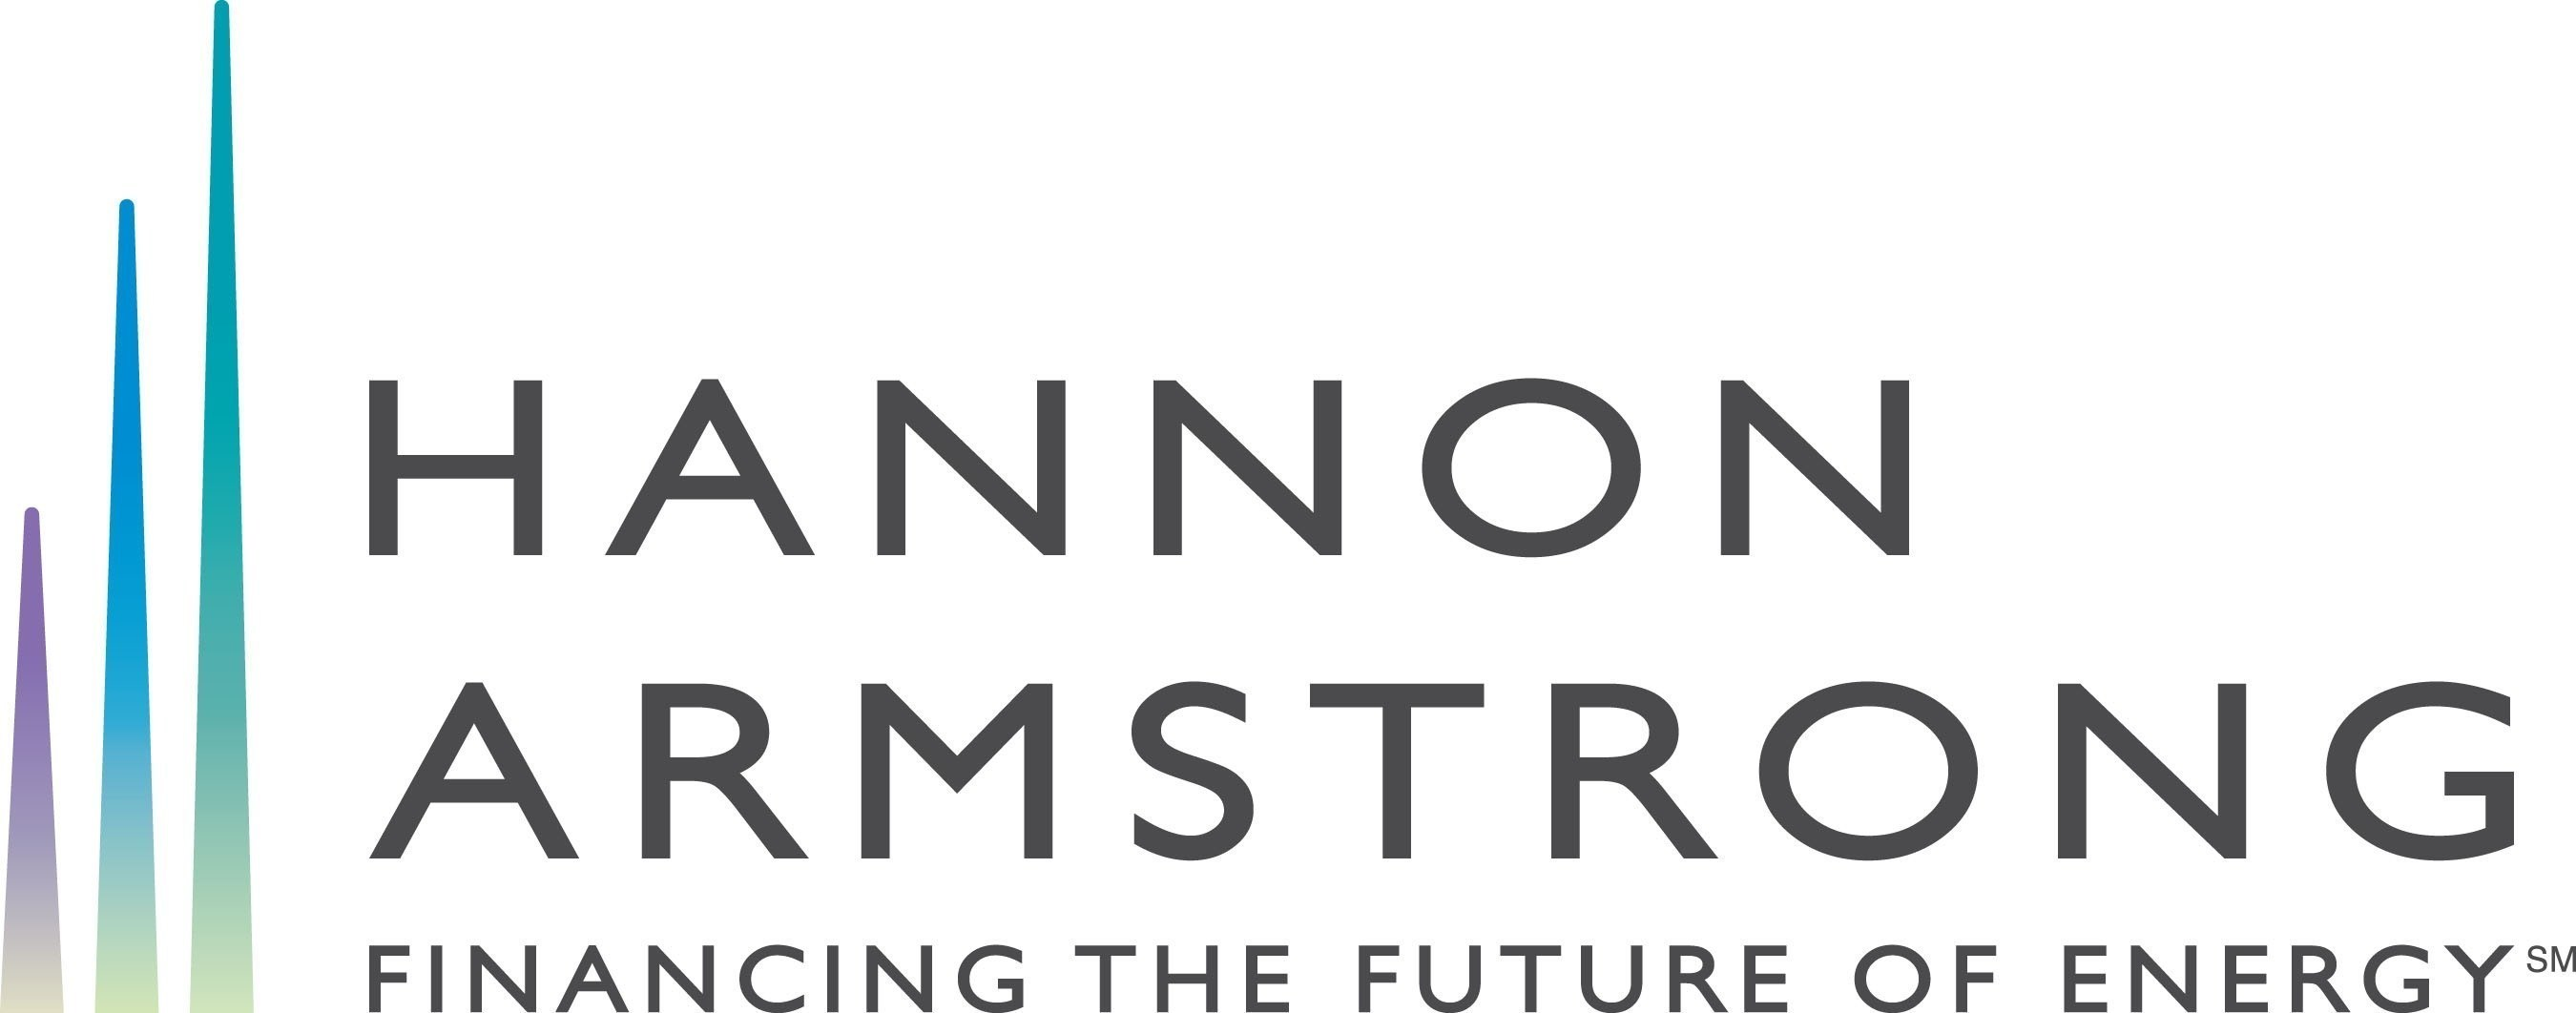 Hannon Armstrong: Financing the future of energy(SM)